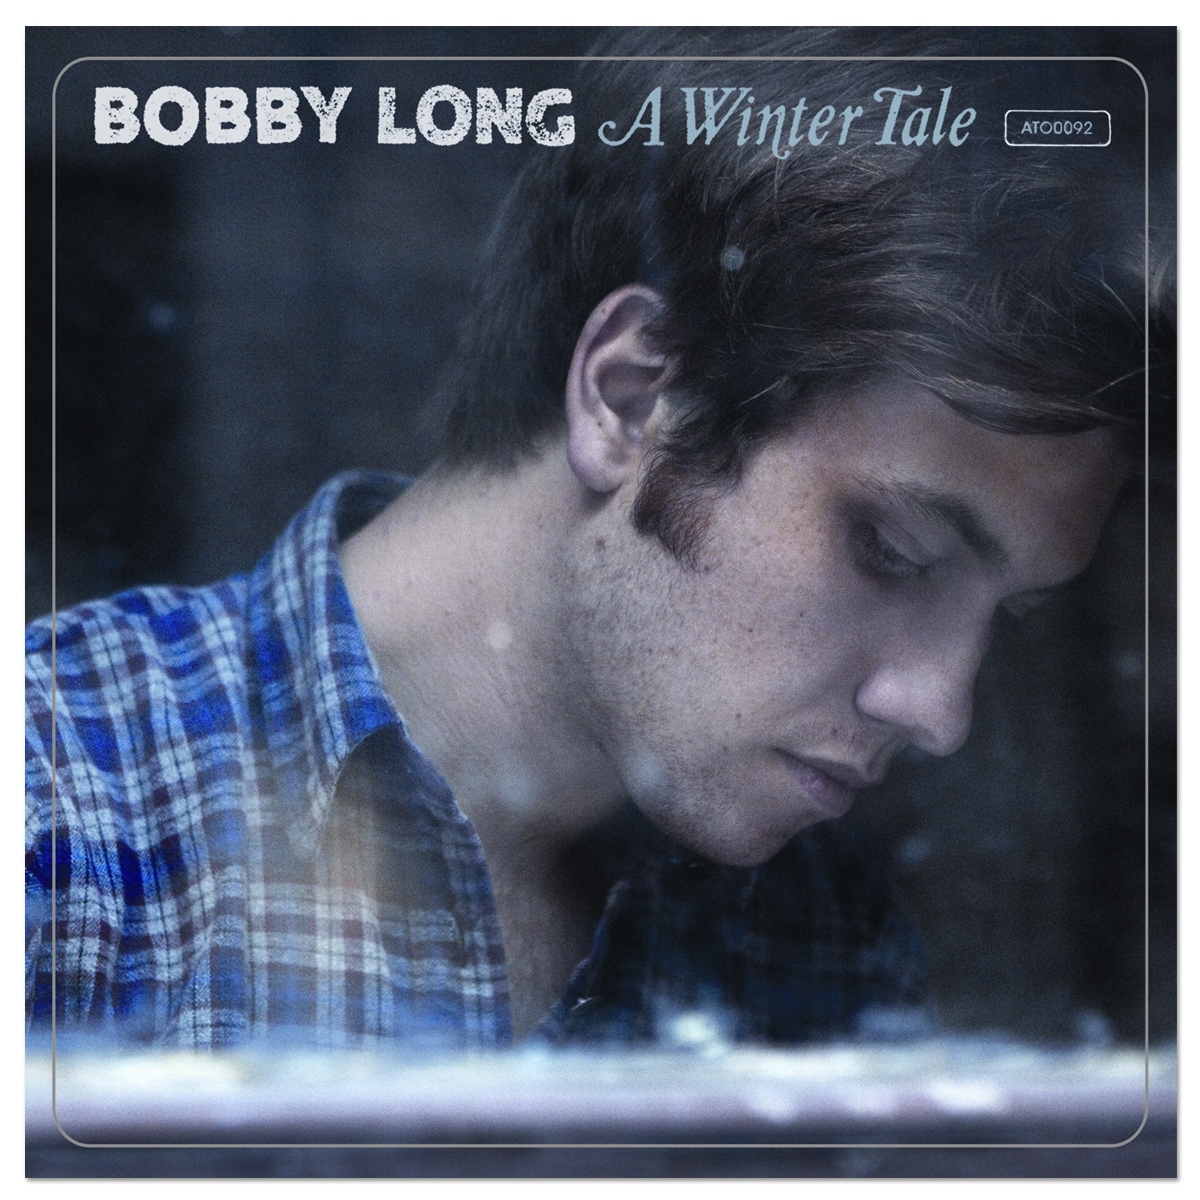 Bobby Long - A Winter Tale Digital Download